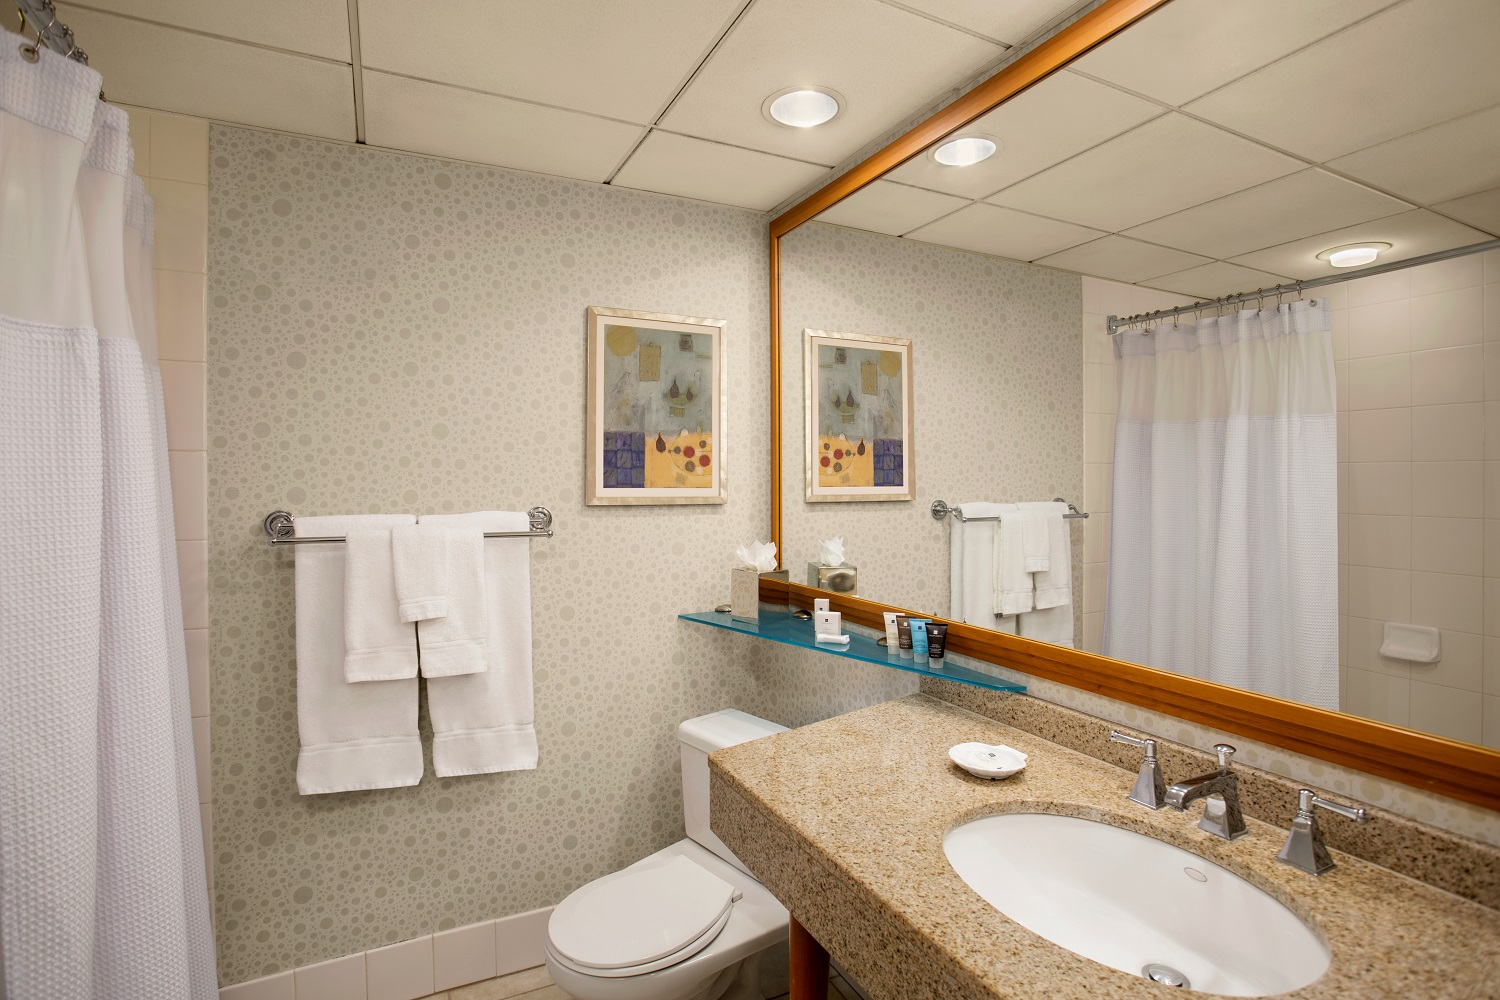 Renovations Crowne Plaza San Francisco Airport - Renovated bathrooms